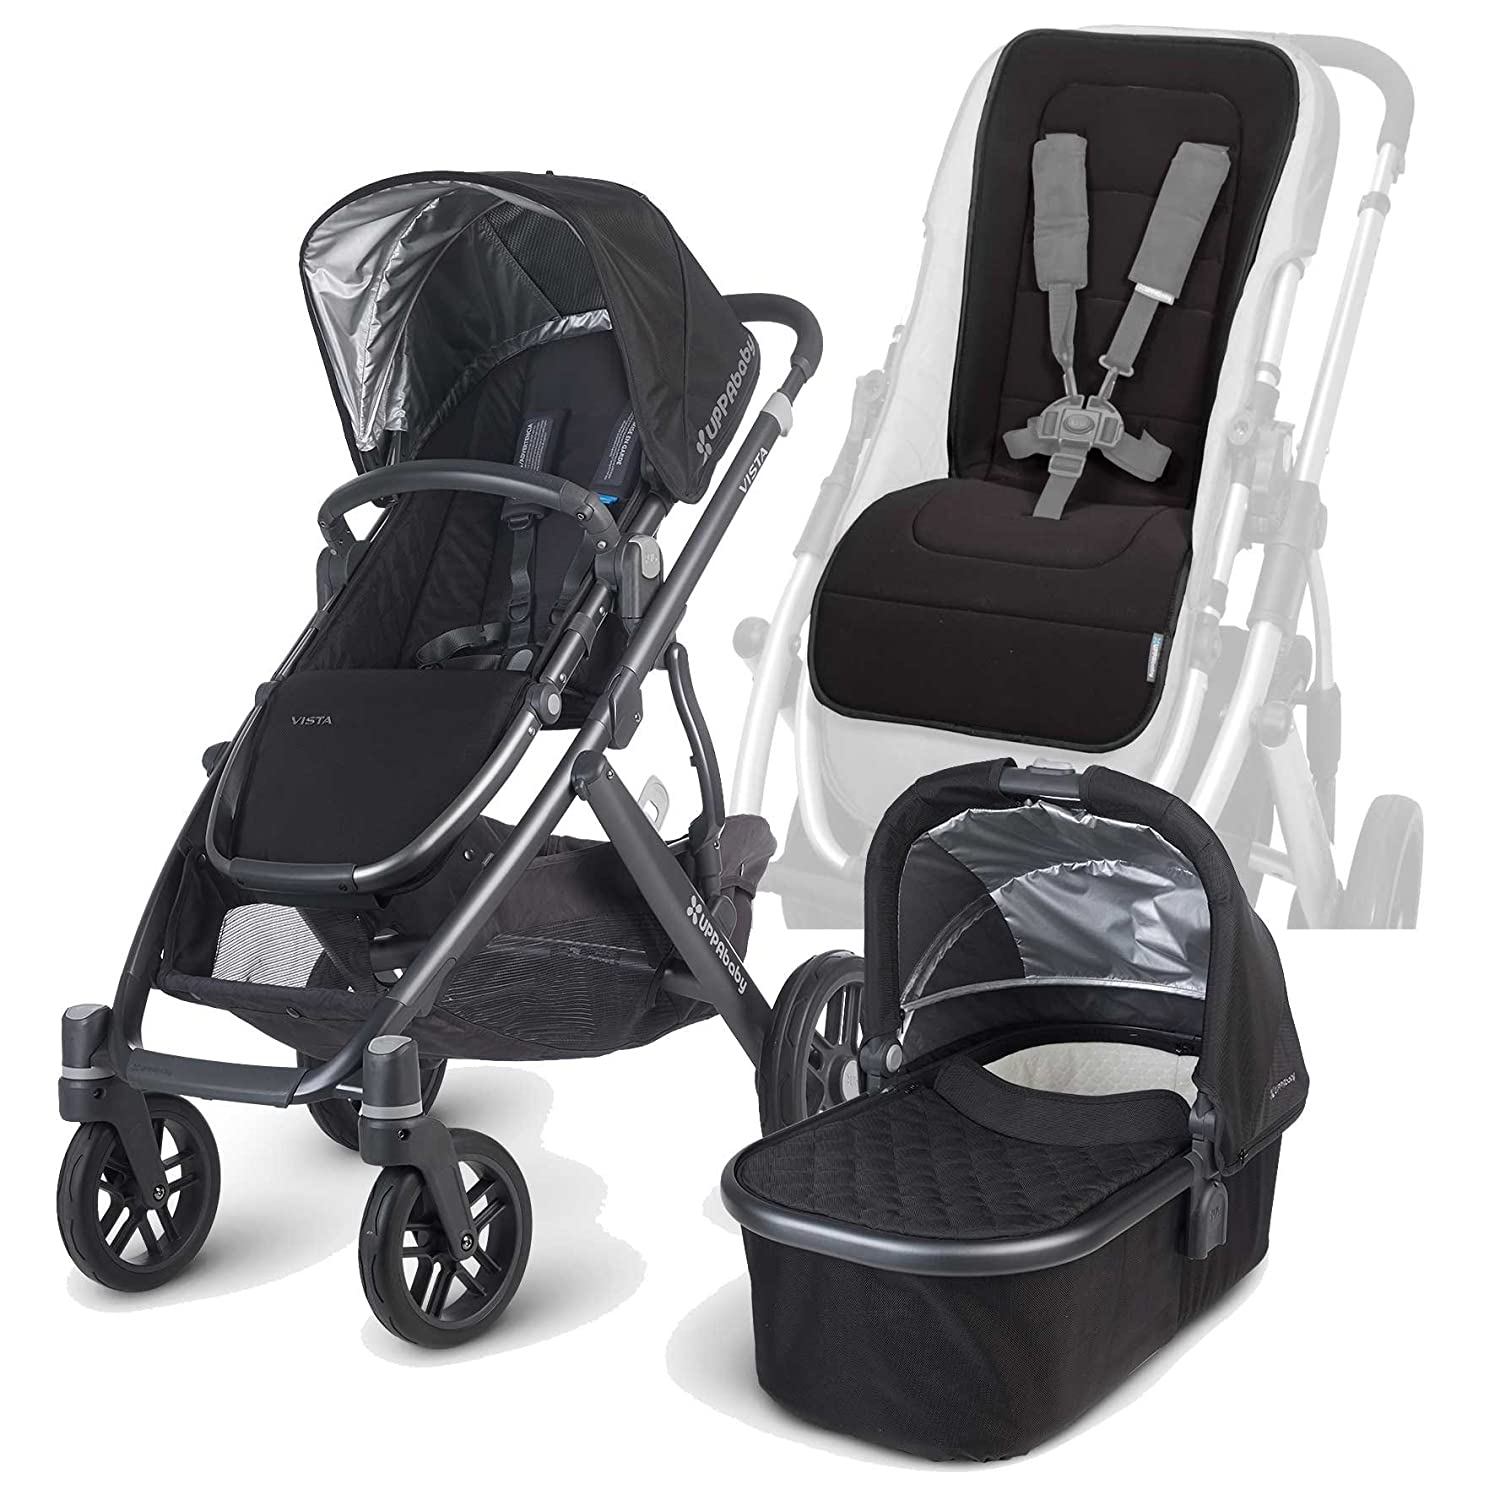 Amazon UPPAbaby 2015 Vista Stroller with Bassinet and Seat Liner Jake Baby